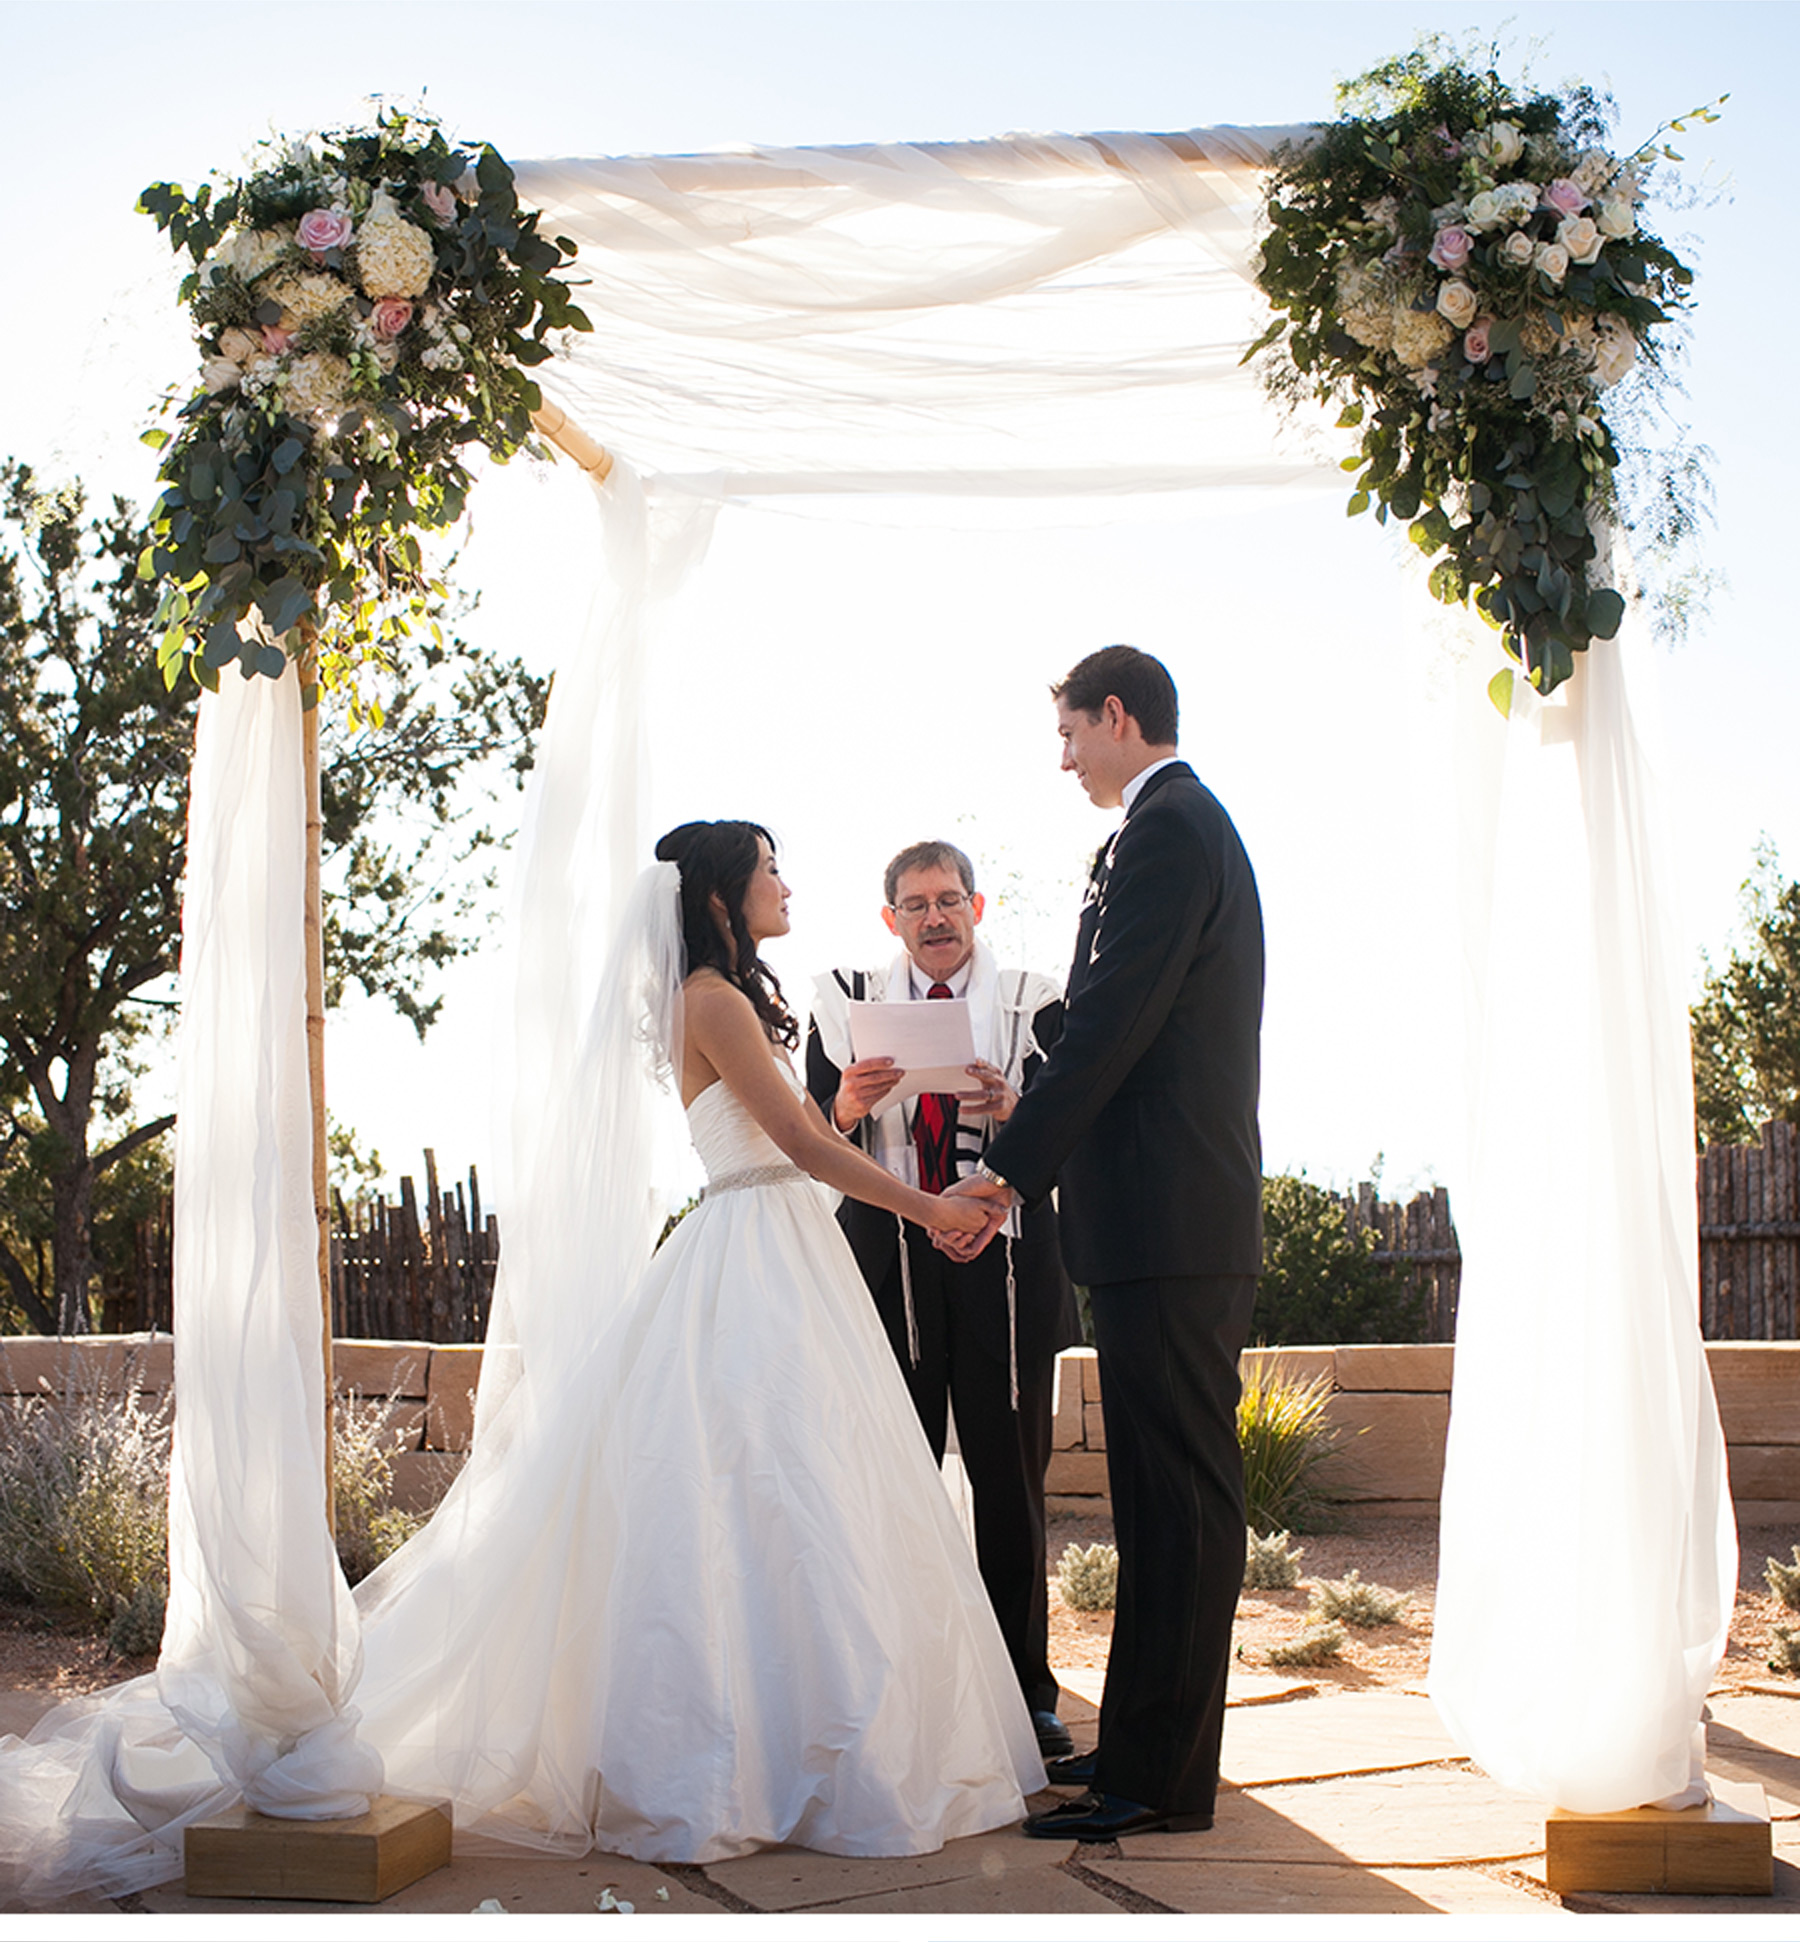 Our Muse - Couture Culture - Be inspired by Katie and Nick's cultural wedding in New Mexico. - invitations, wedding, ceci new york, inspiration, ceci johnson, celebration, bride, groom, event, luxury wedding invitations, couture, custom wedding invitations